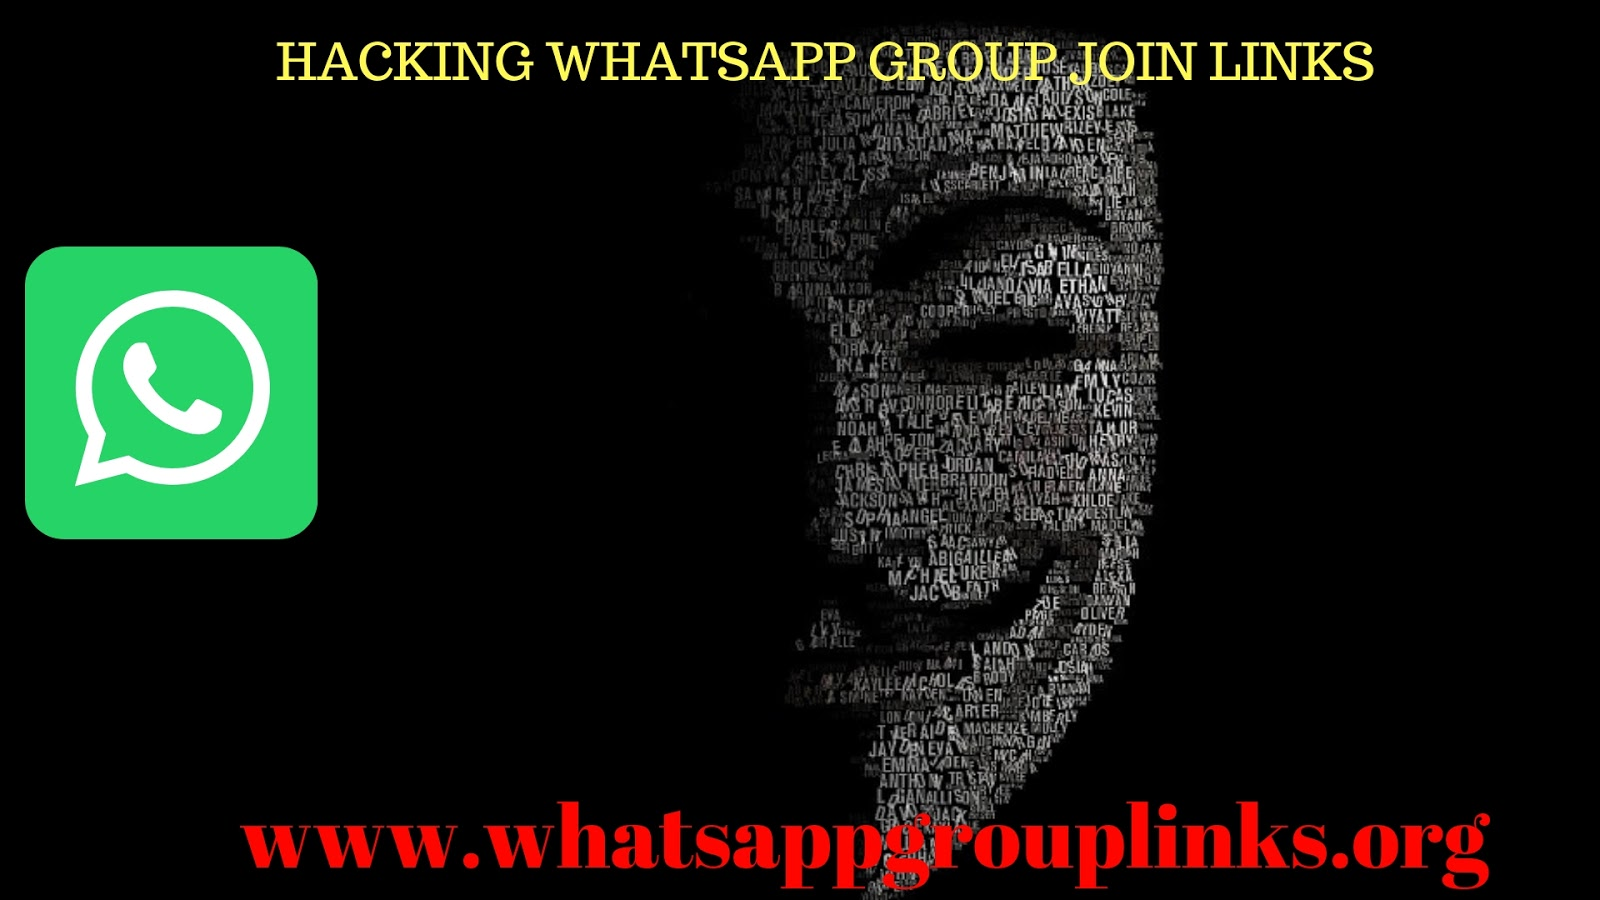 Join Hacking Whatsapp Group Links List Whatsapp Group Links - join hacking whatsapp group links list